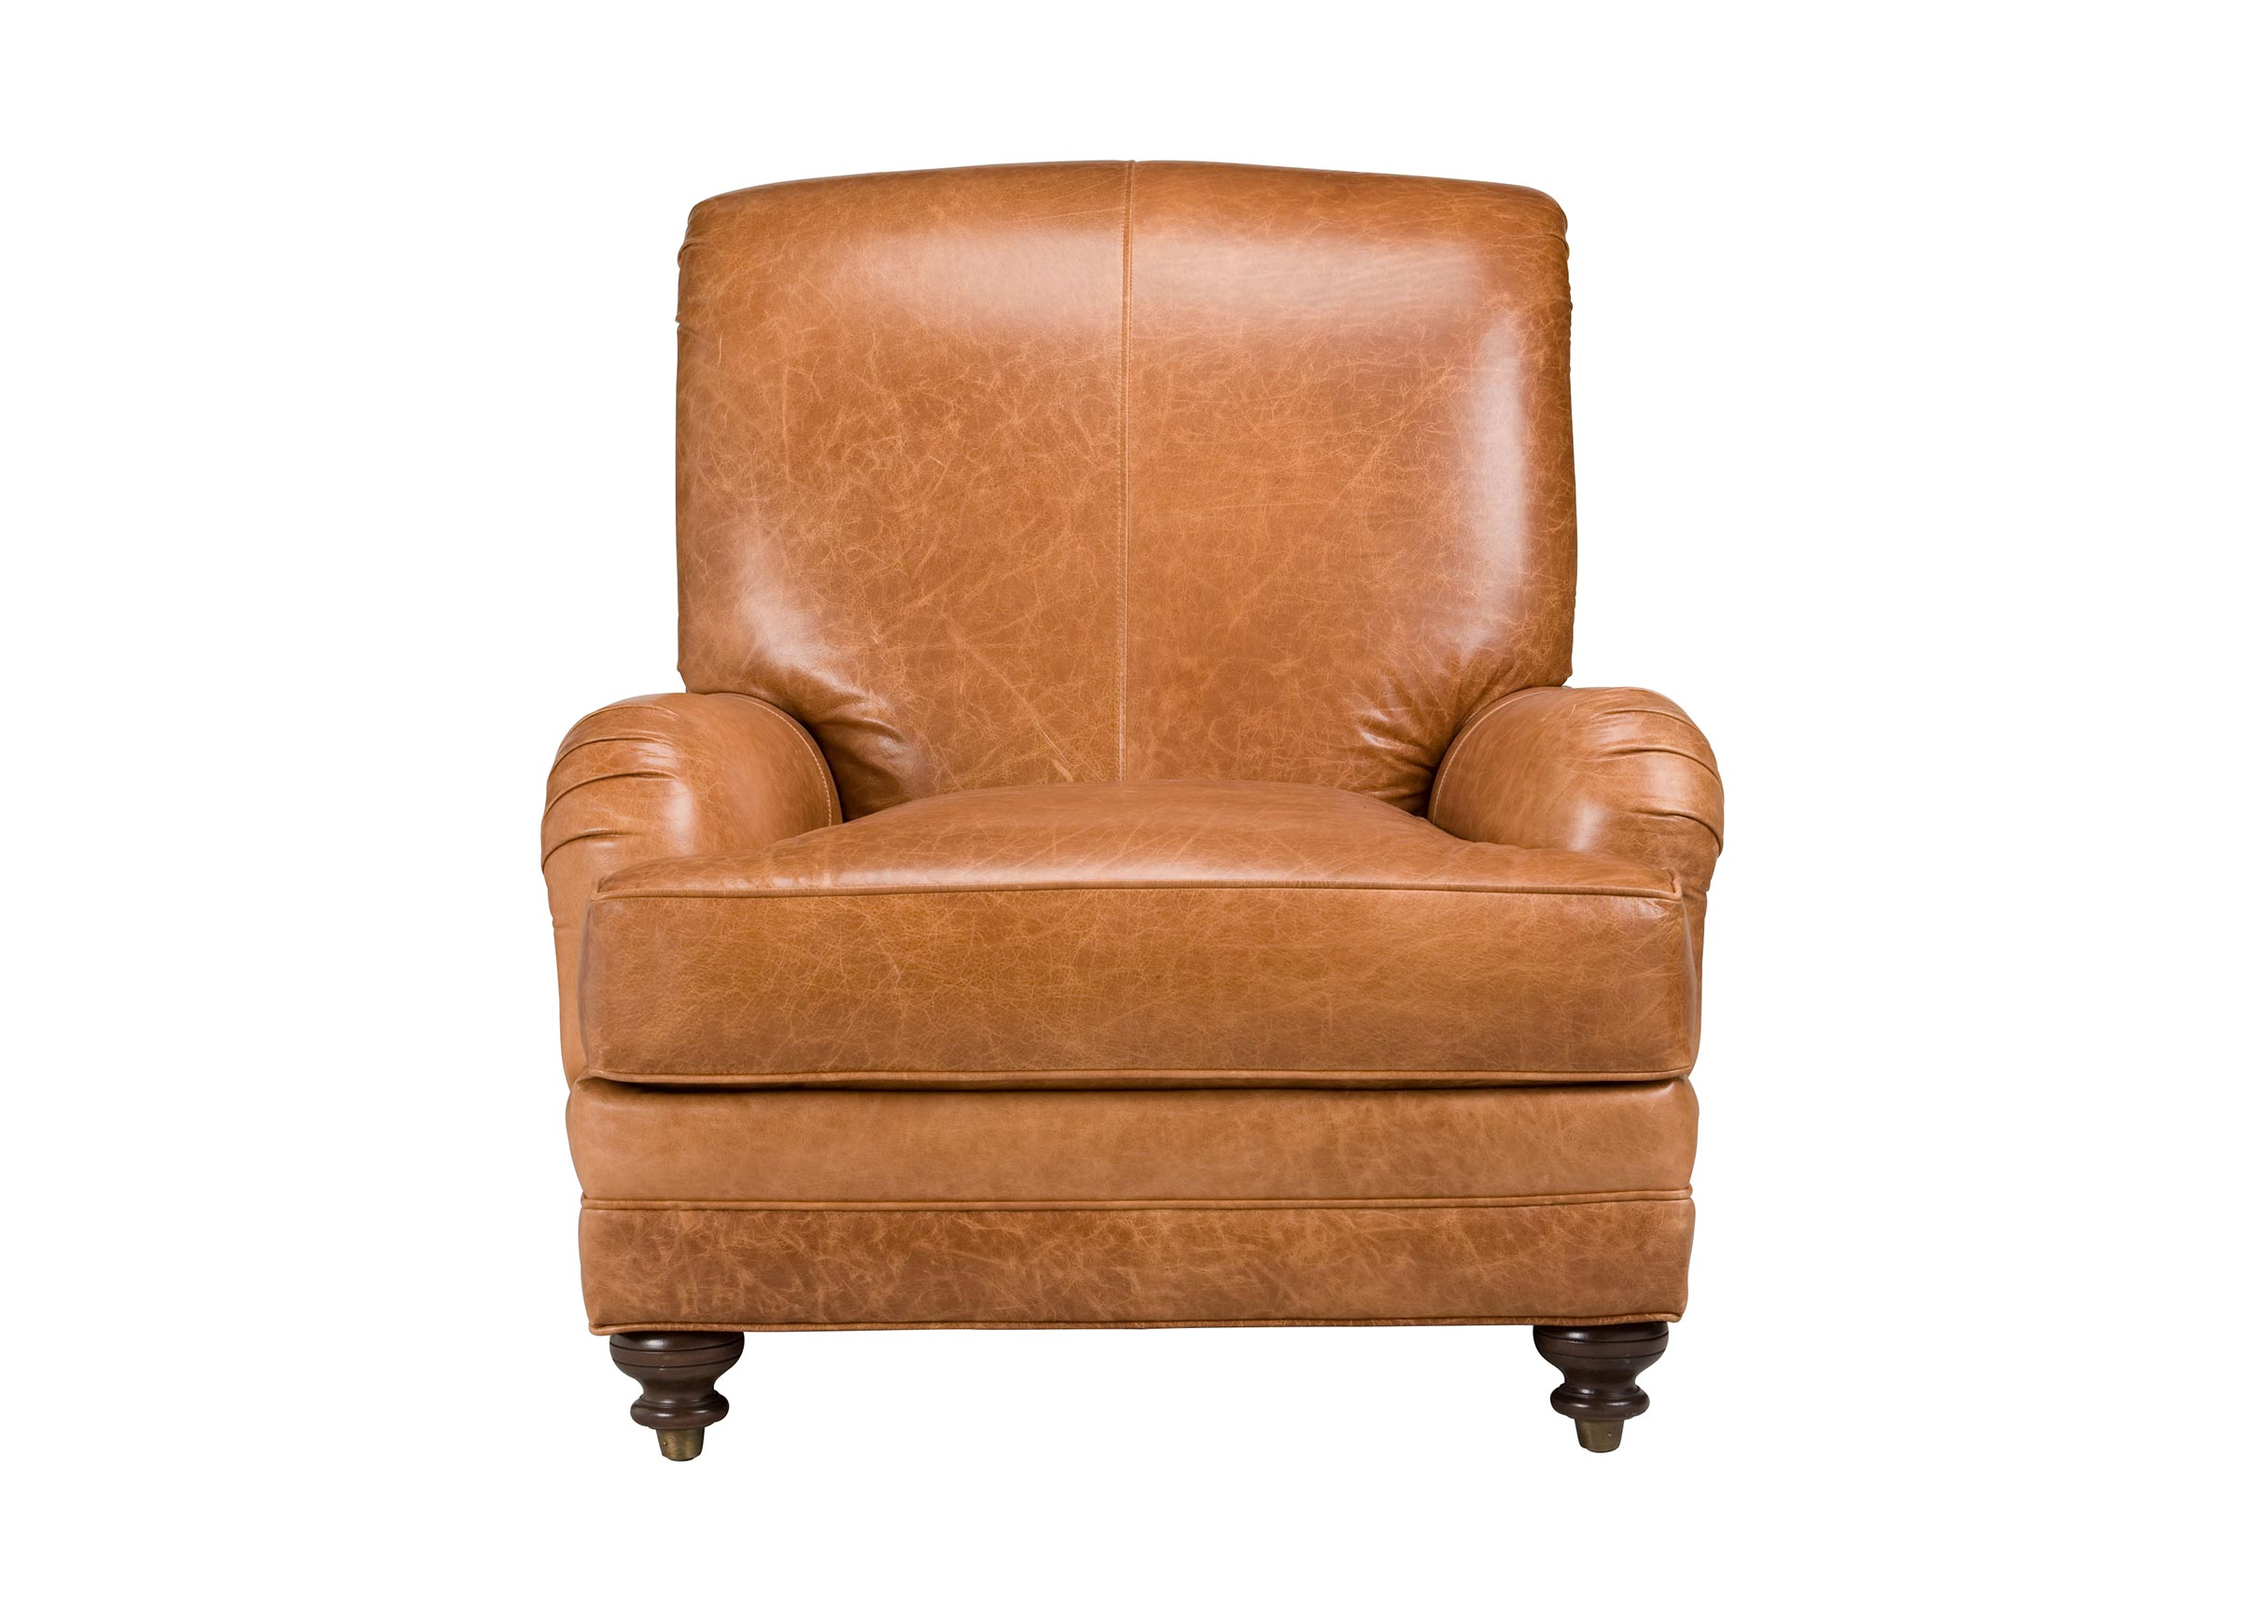 Whitfield Leather Chair Chairs Amp Chaises Ethan Allen